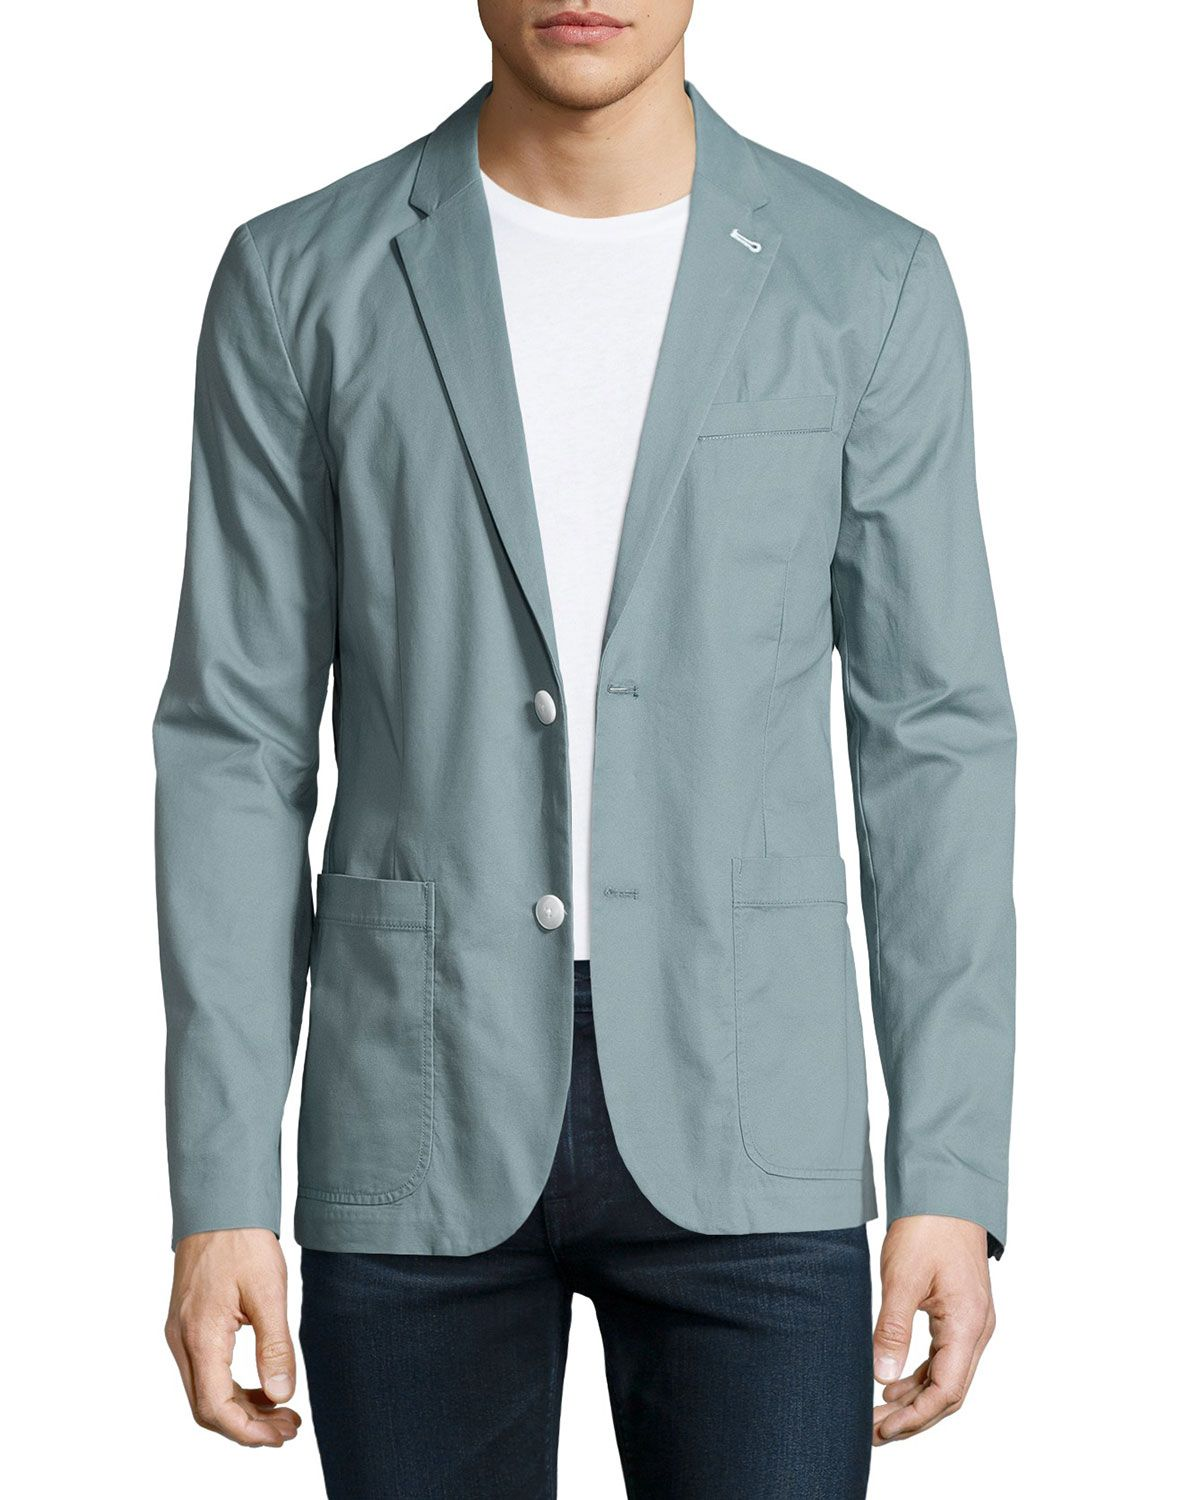 Home    Blazers    Penguin Classic-Fit Patch-Pocket Cotton Blazer, Trooper,  Men s, Size  M Penguin Classic-Fit Patch-Pocket Cotton Blazer, Trooper  Details ... b6b01cd22d